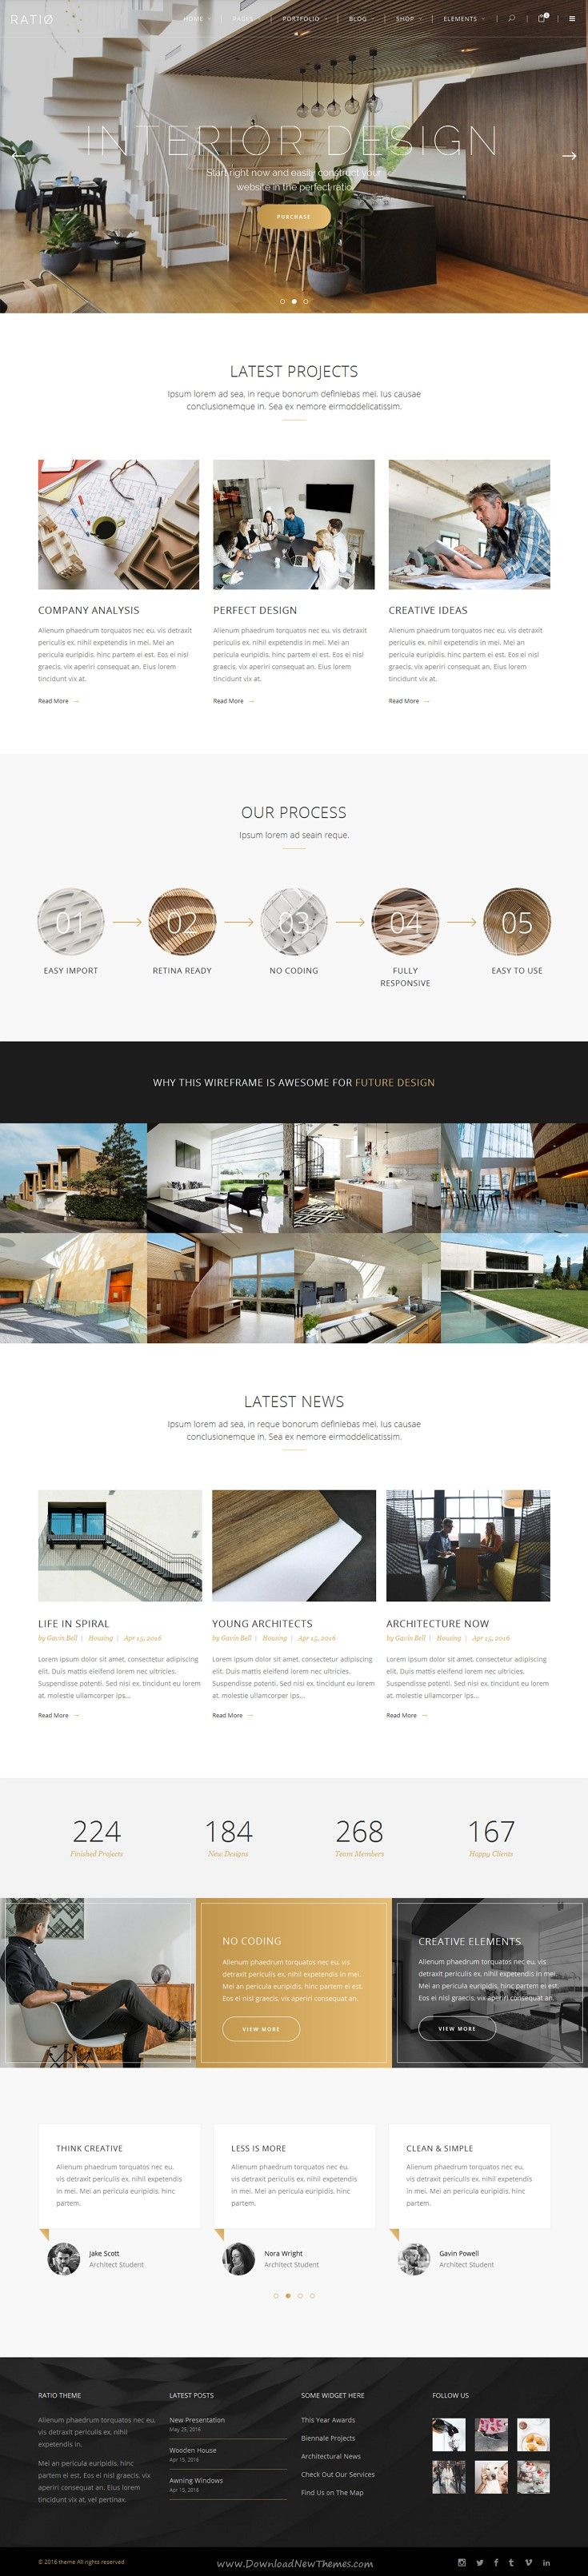 Ratio is Powerful WordPress Theme for Architecture, Construction, and #Interior #Design #website. Download Now➯ http://themeforest.net/item/ratio-a-powerful-theme-for-architecture-construction-and-interior-design/14102945?ref=Datasata